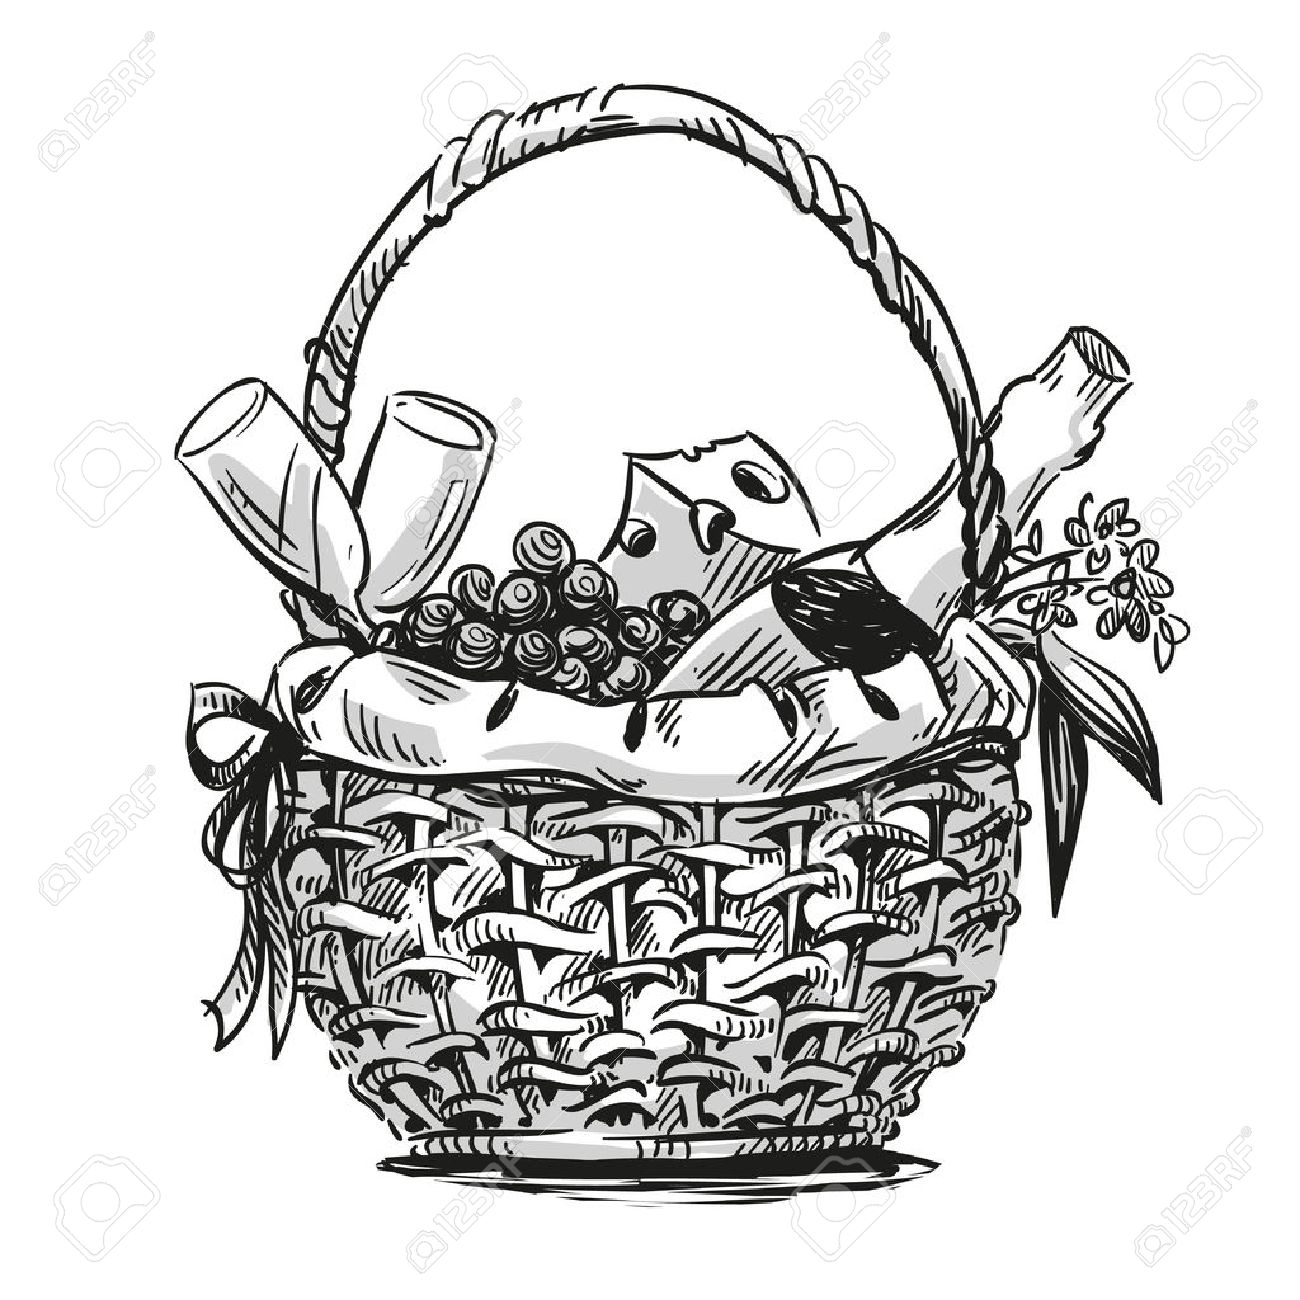 1300x1300 Picnic Basket With Snack. Hand Drawn. Royalty Free Cliparts